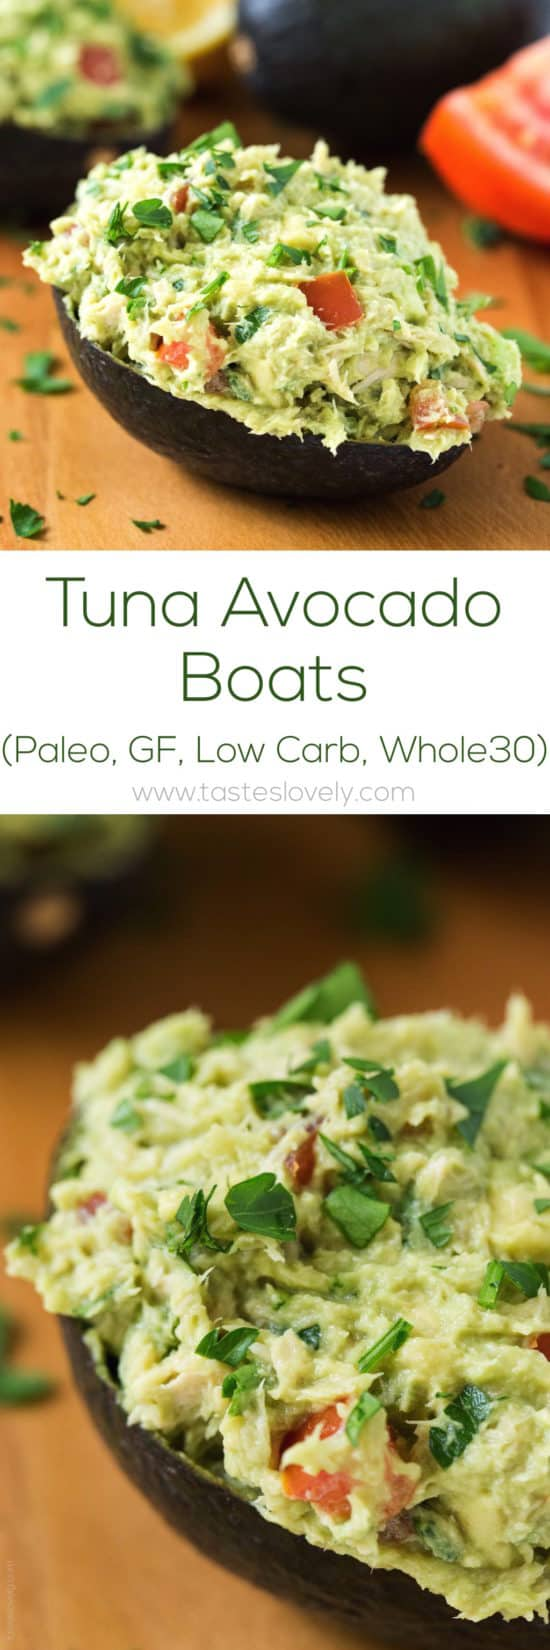 Paleo Tuna Avocado Boats - no mayo, just tuna and avocado! (gluten free, low carb, Whole30)